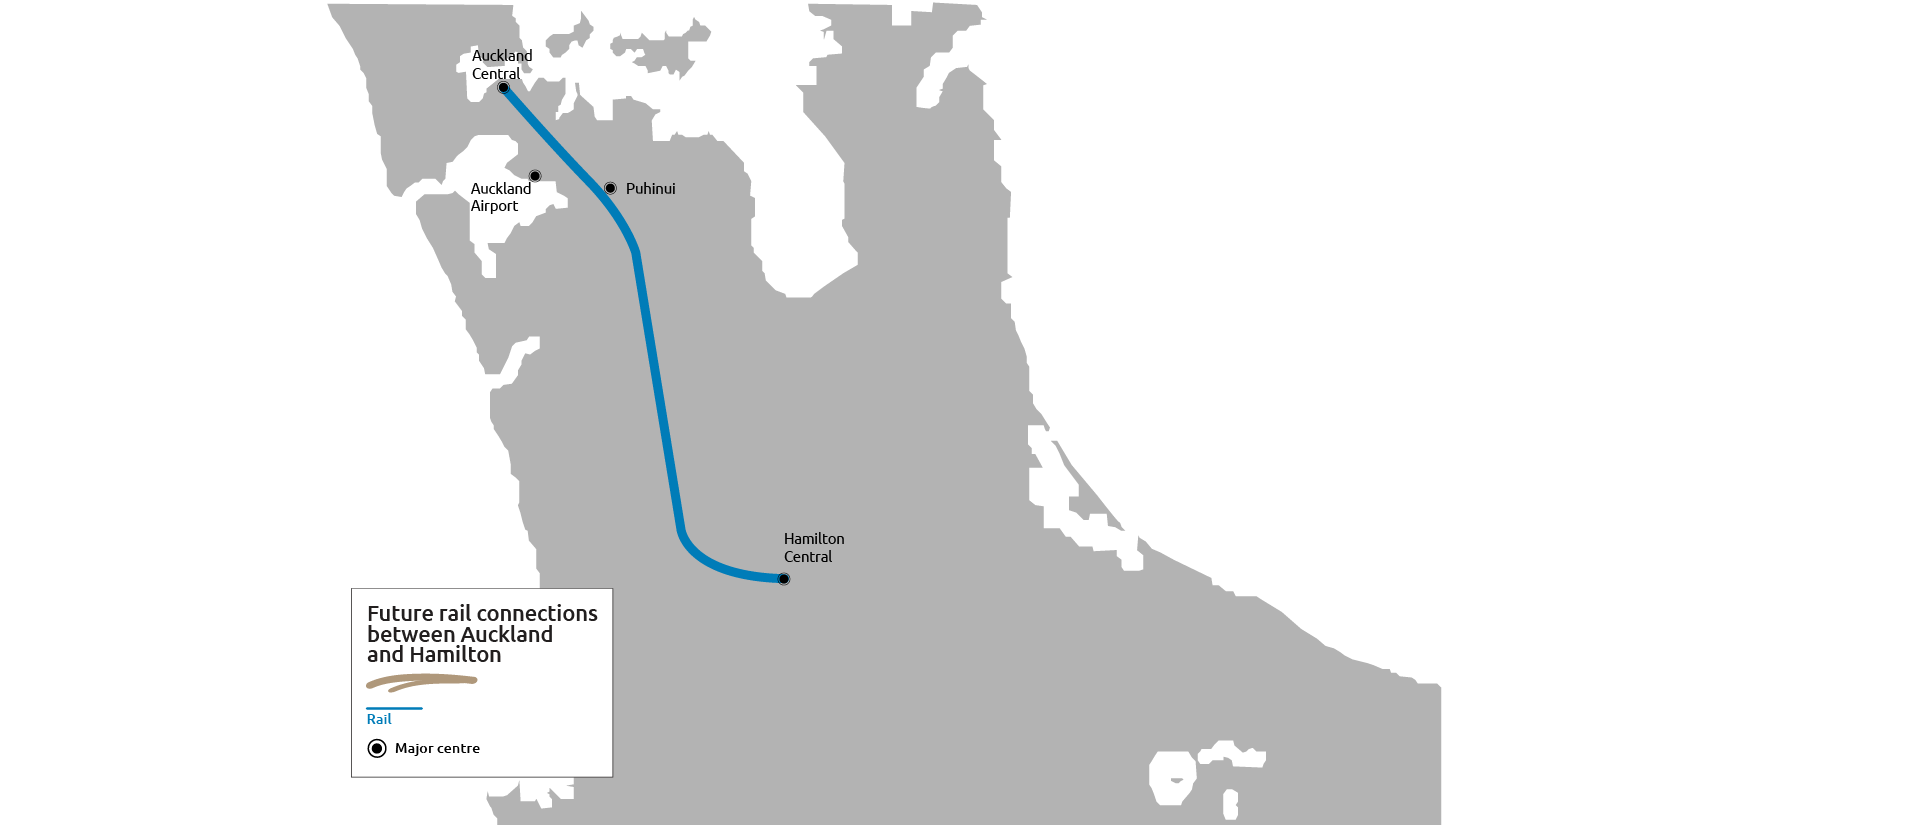 Map of the north island showing future rail connections between Auckland Central and Hamilton Central.